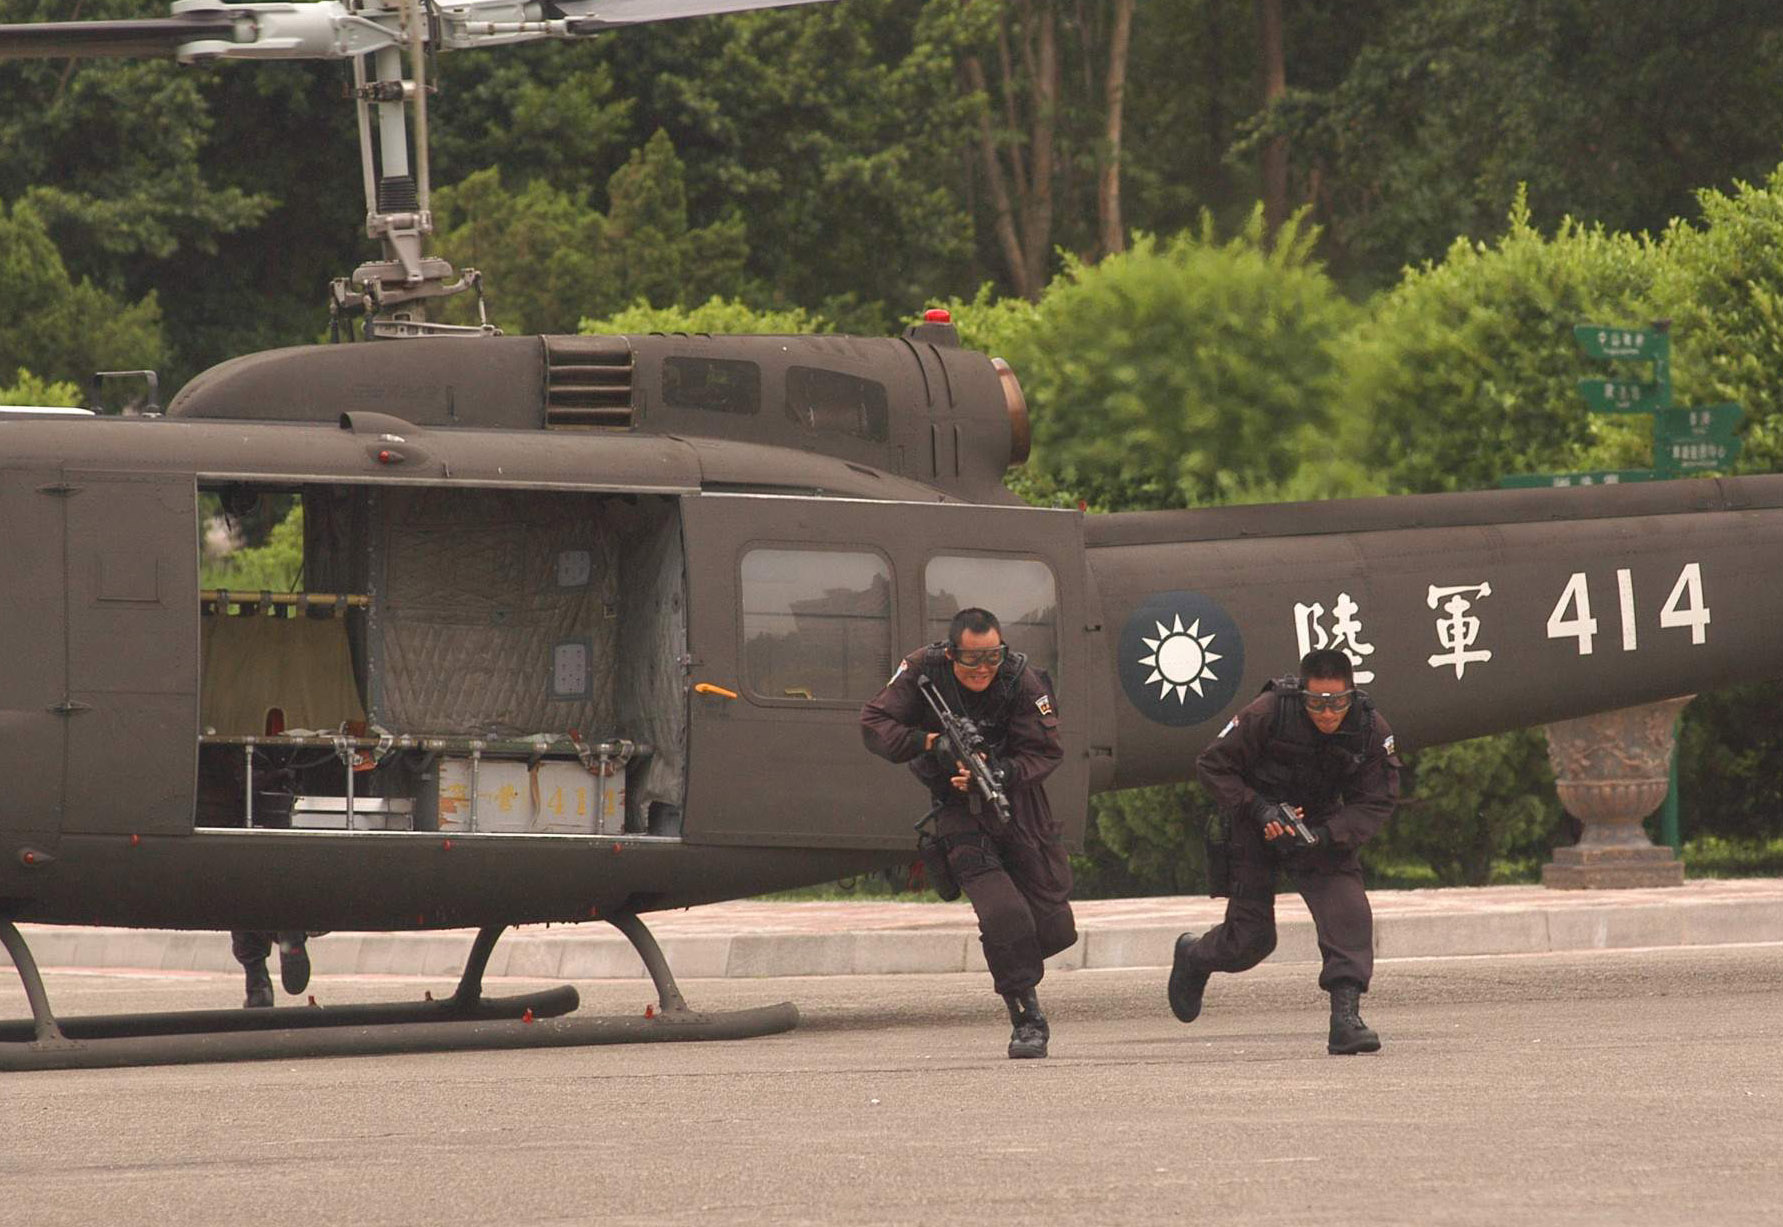 alt=Two men in military uniform getting off an helicopter. They are both running and carrying a weapon.